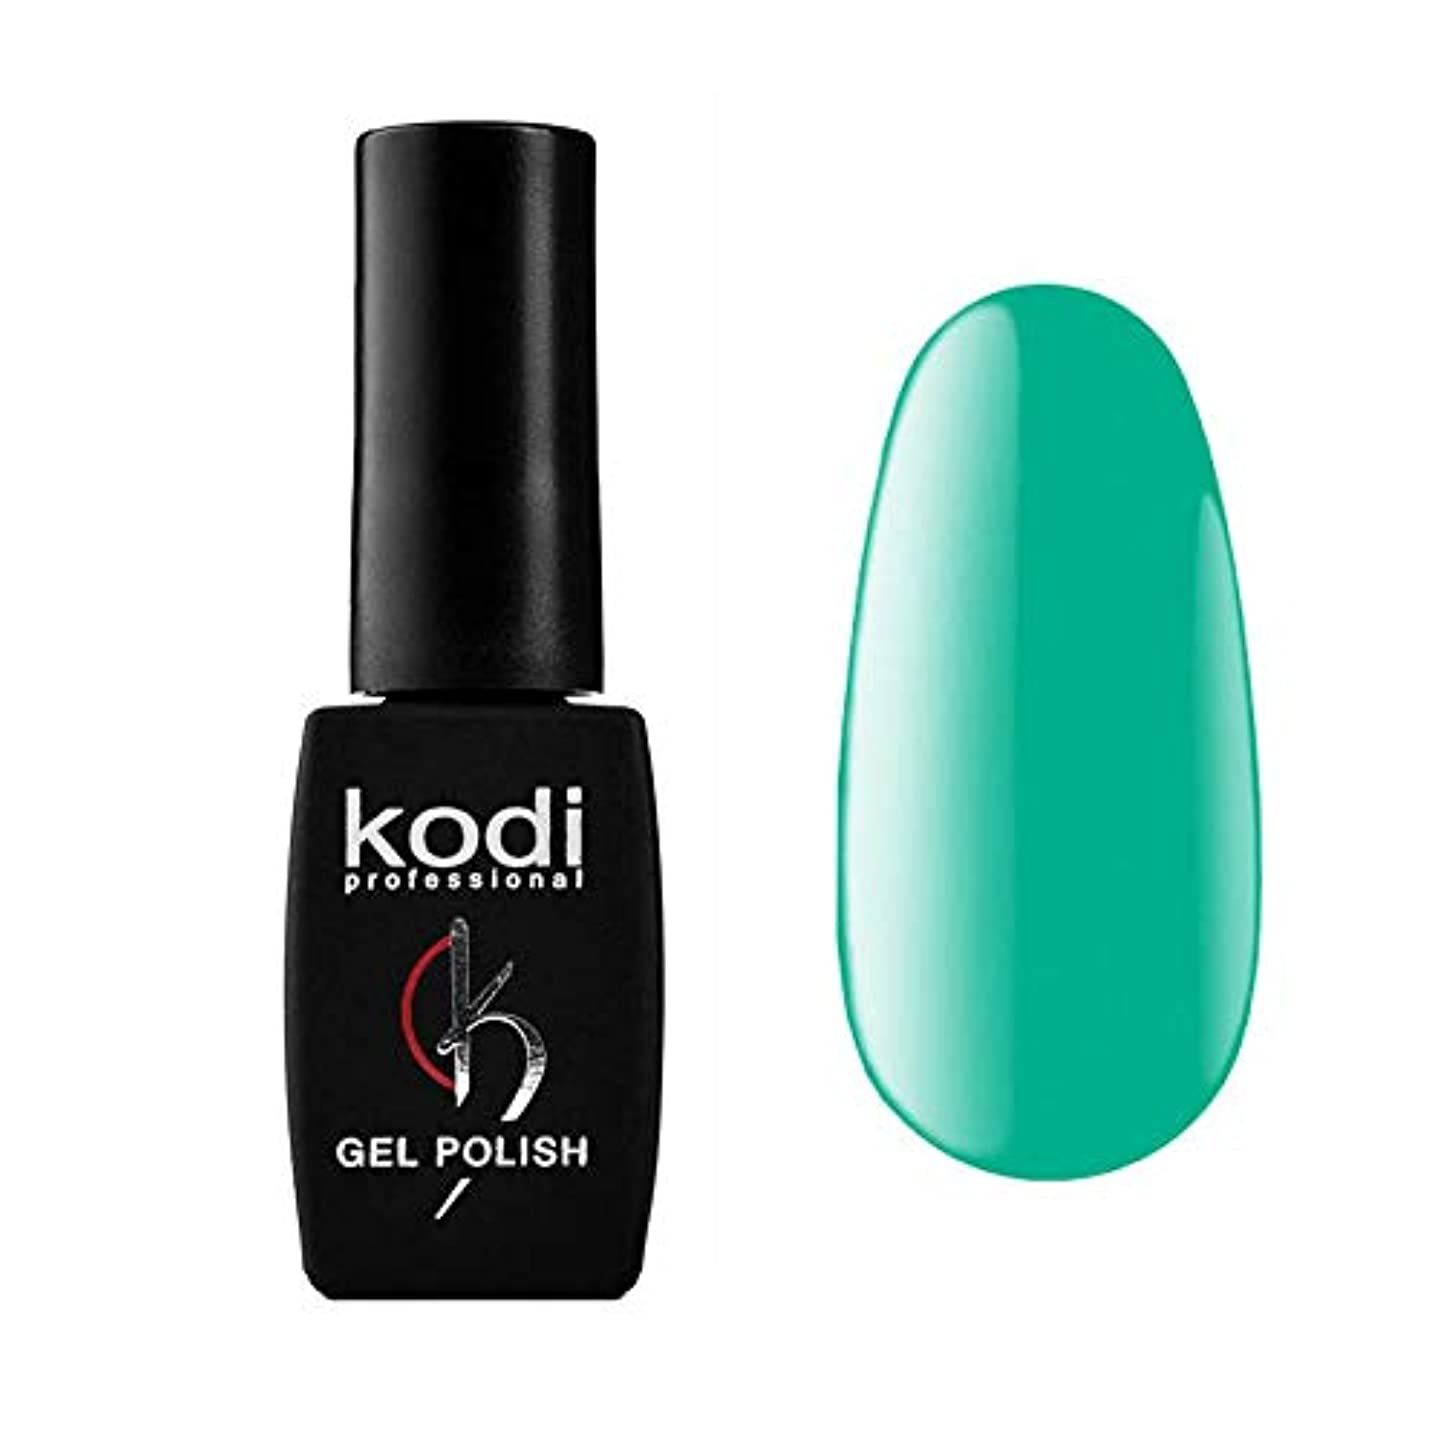 ばかシーボード雇用者Kodi Professional New Collection AQ AQUAMARINE #20 Color Gel Nail Polish 12ml 0.42 Fl Oz LED UV Genuine Soak Off